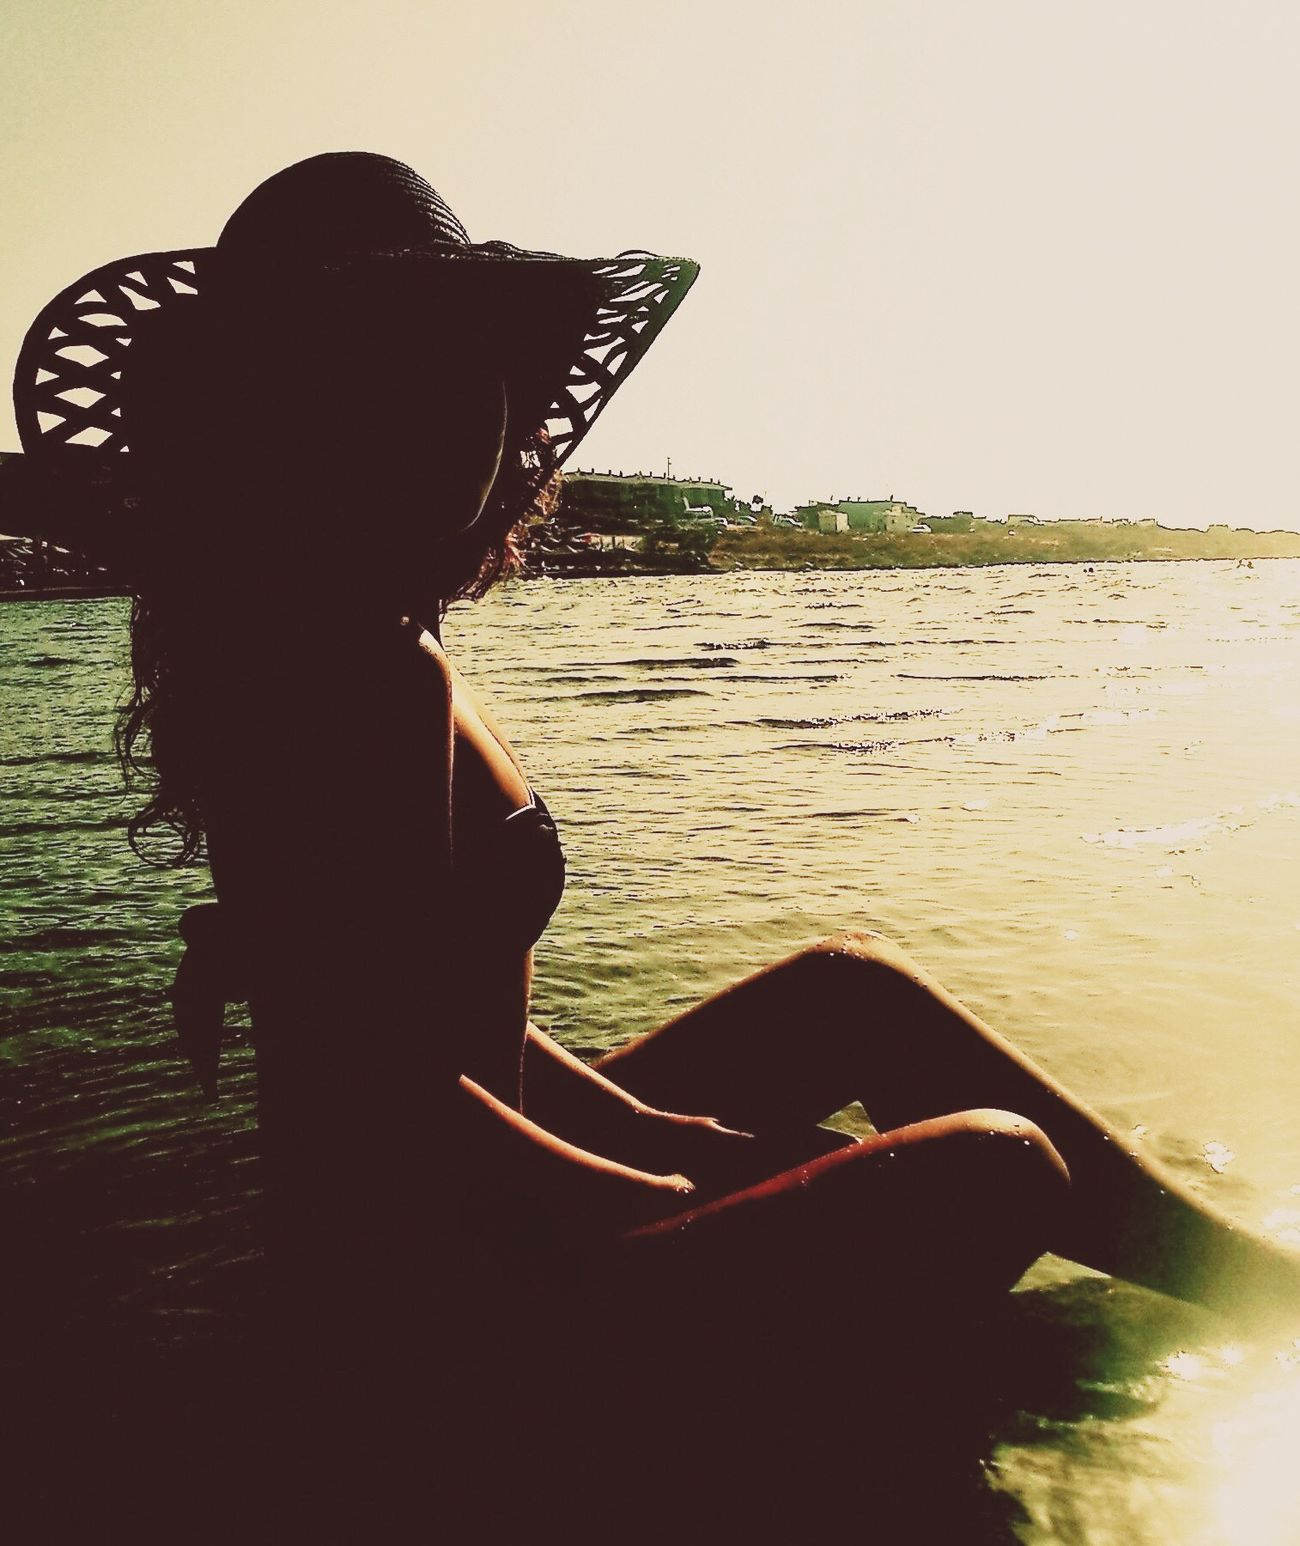 Summer Girl Enjoying Life Sun Summer Views Summertime Holiday Summer ☀ Big Hat Summer 2013 Sea Çeşme Aegean Sea